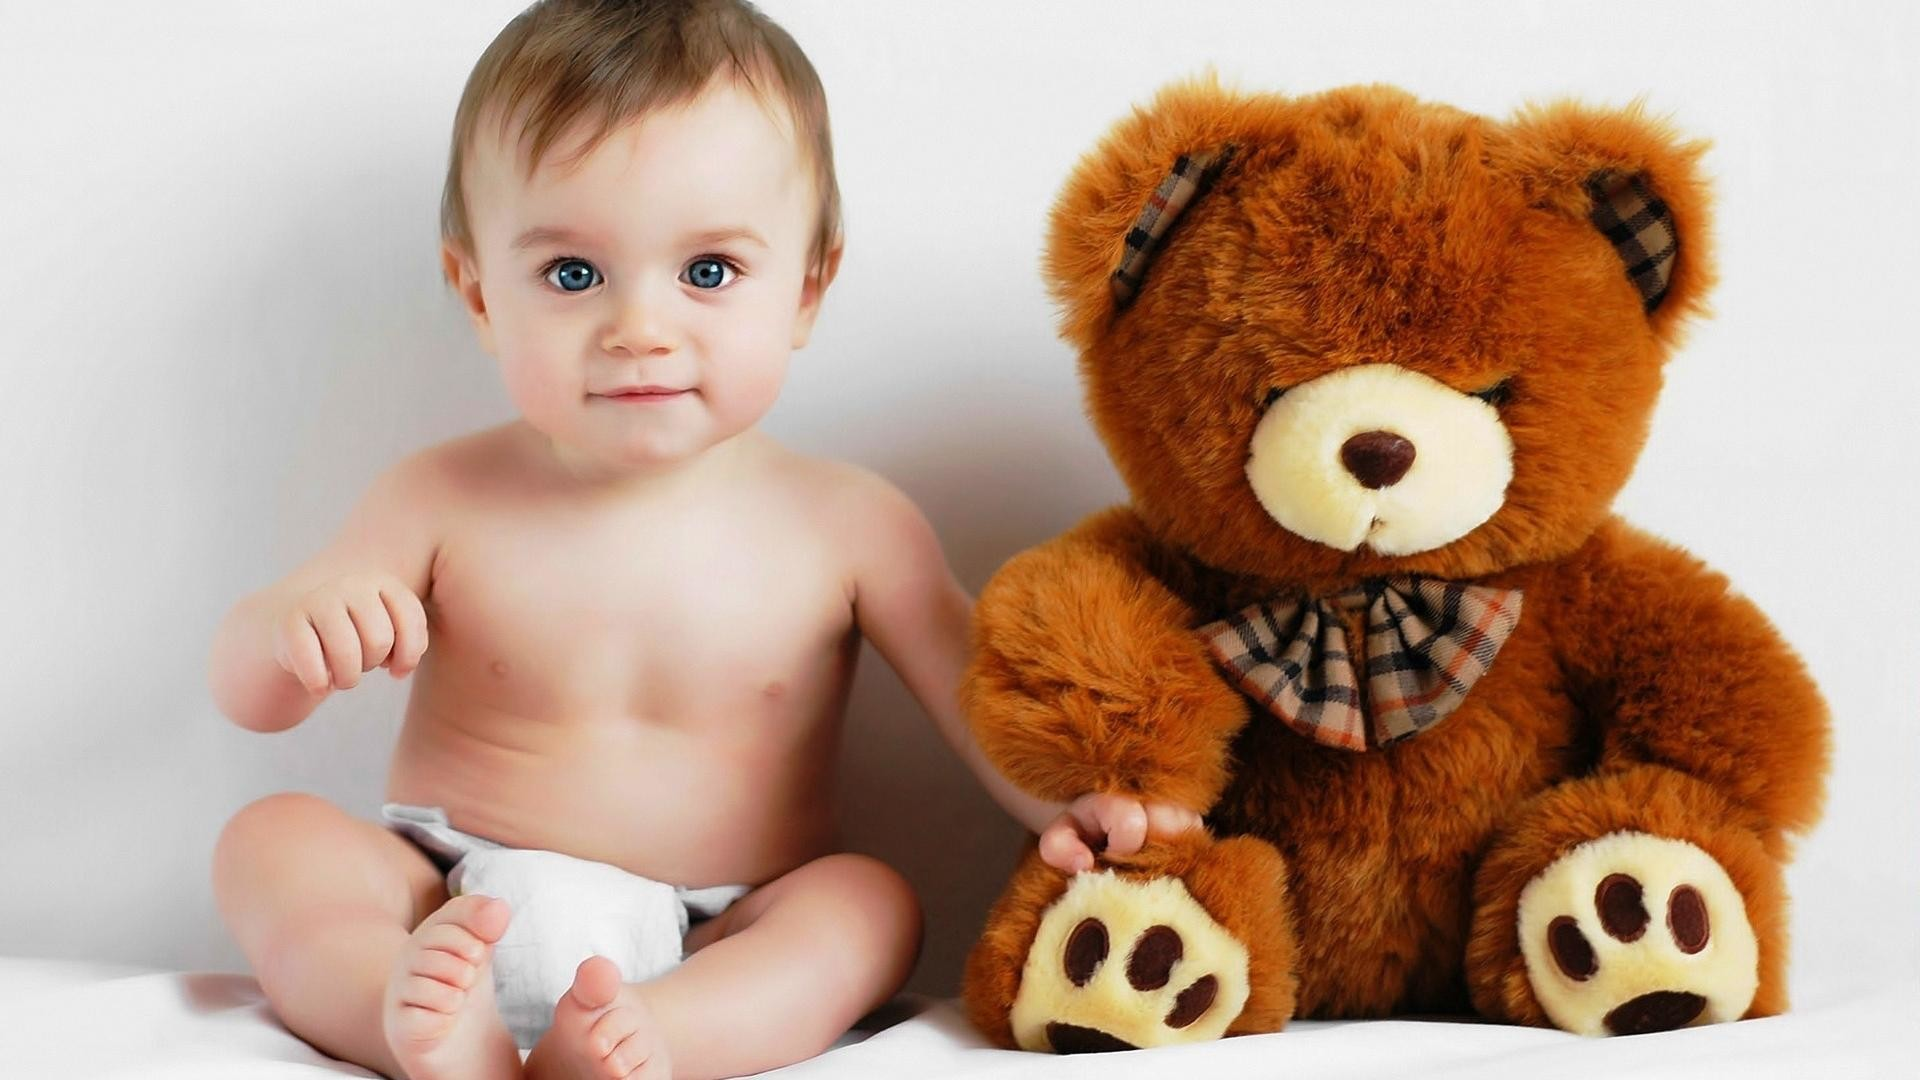 Cute Baby Boy Wallpapers Mobile Many Hd Wallpaper